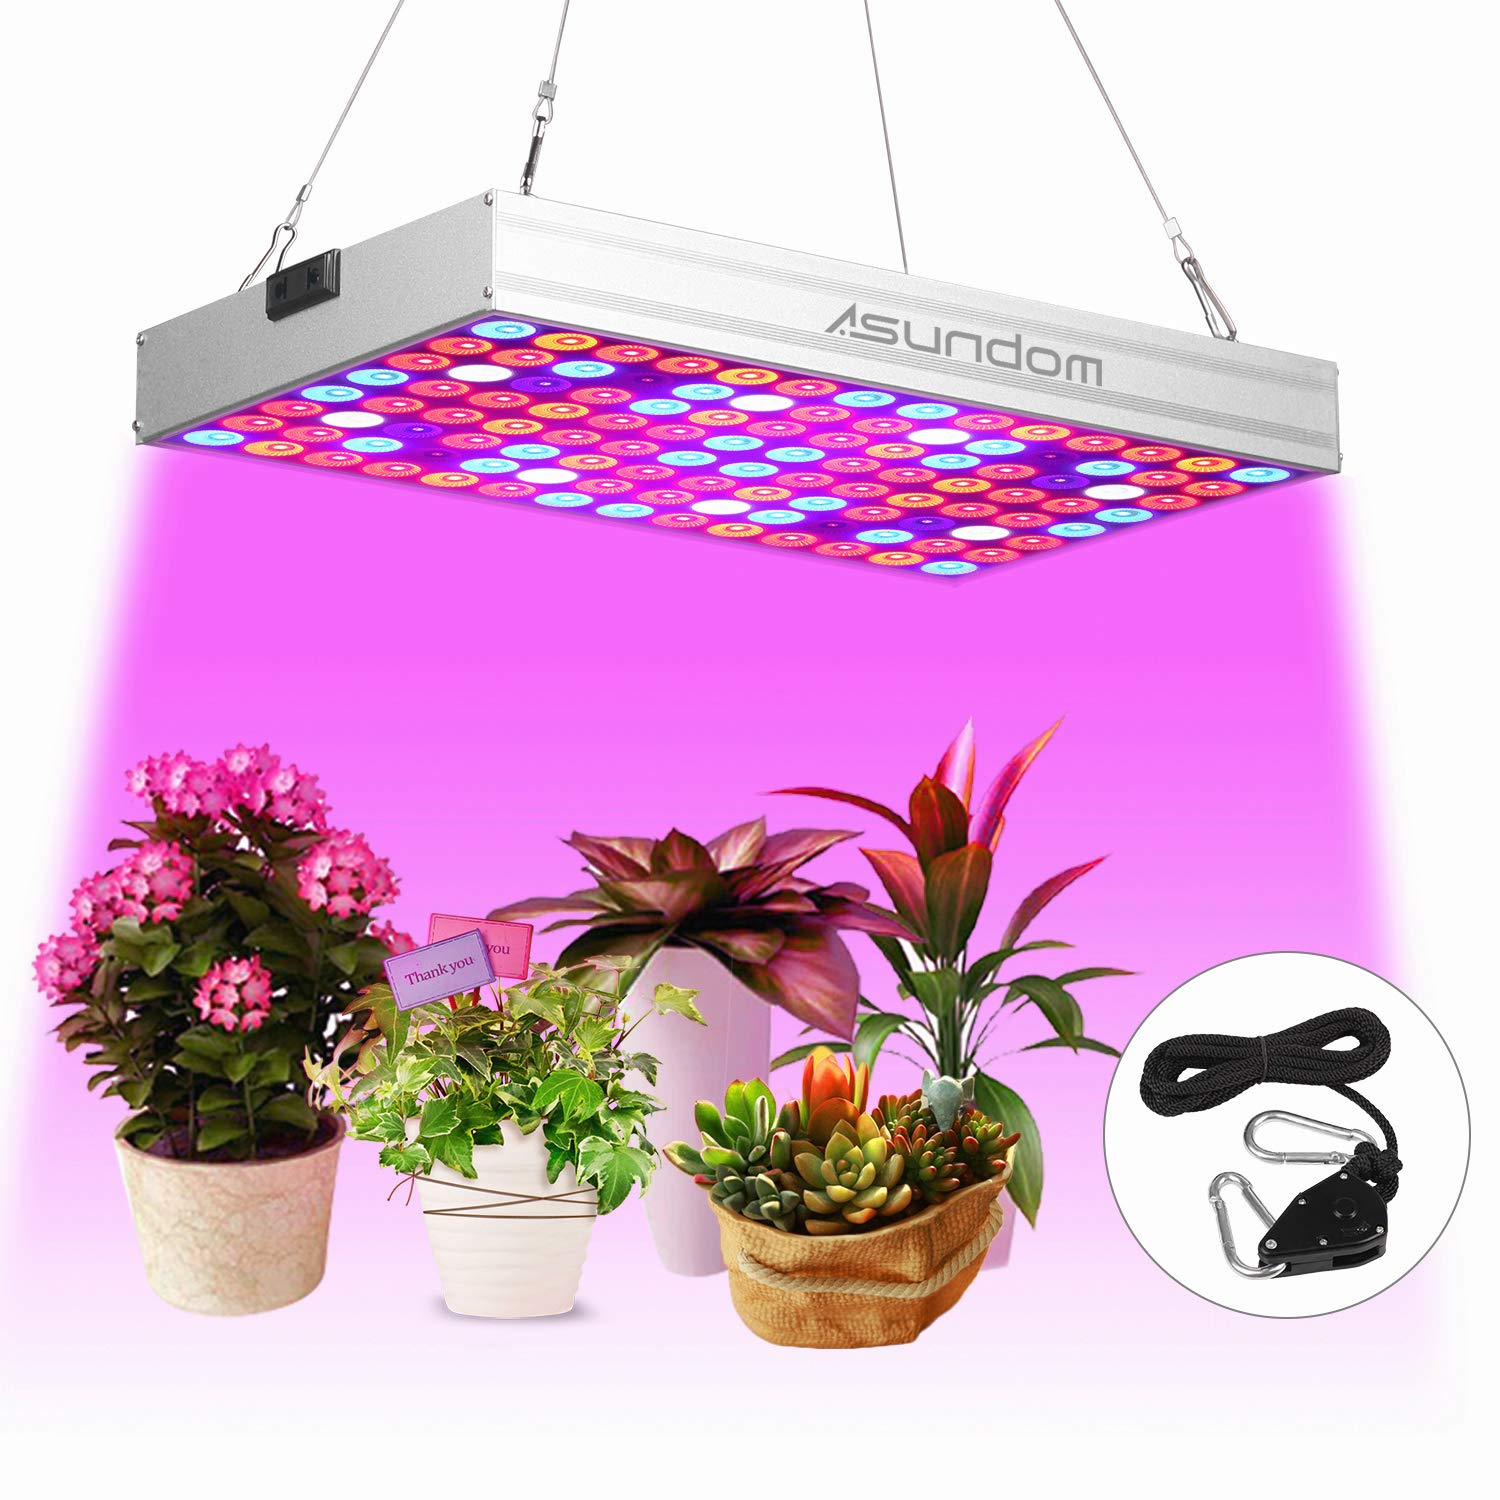 LED Plant Grow Light, Asundom Full Spectrum 100W Pro Aluminum Made Grow Lights with Daisy Chain for Hydroponic Indoor Plants Seeding, Germination & Flowering. by ASUNDOM